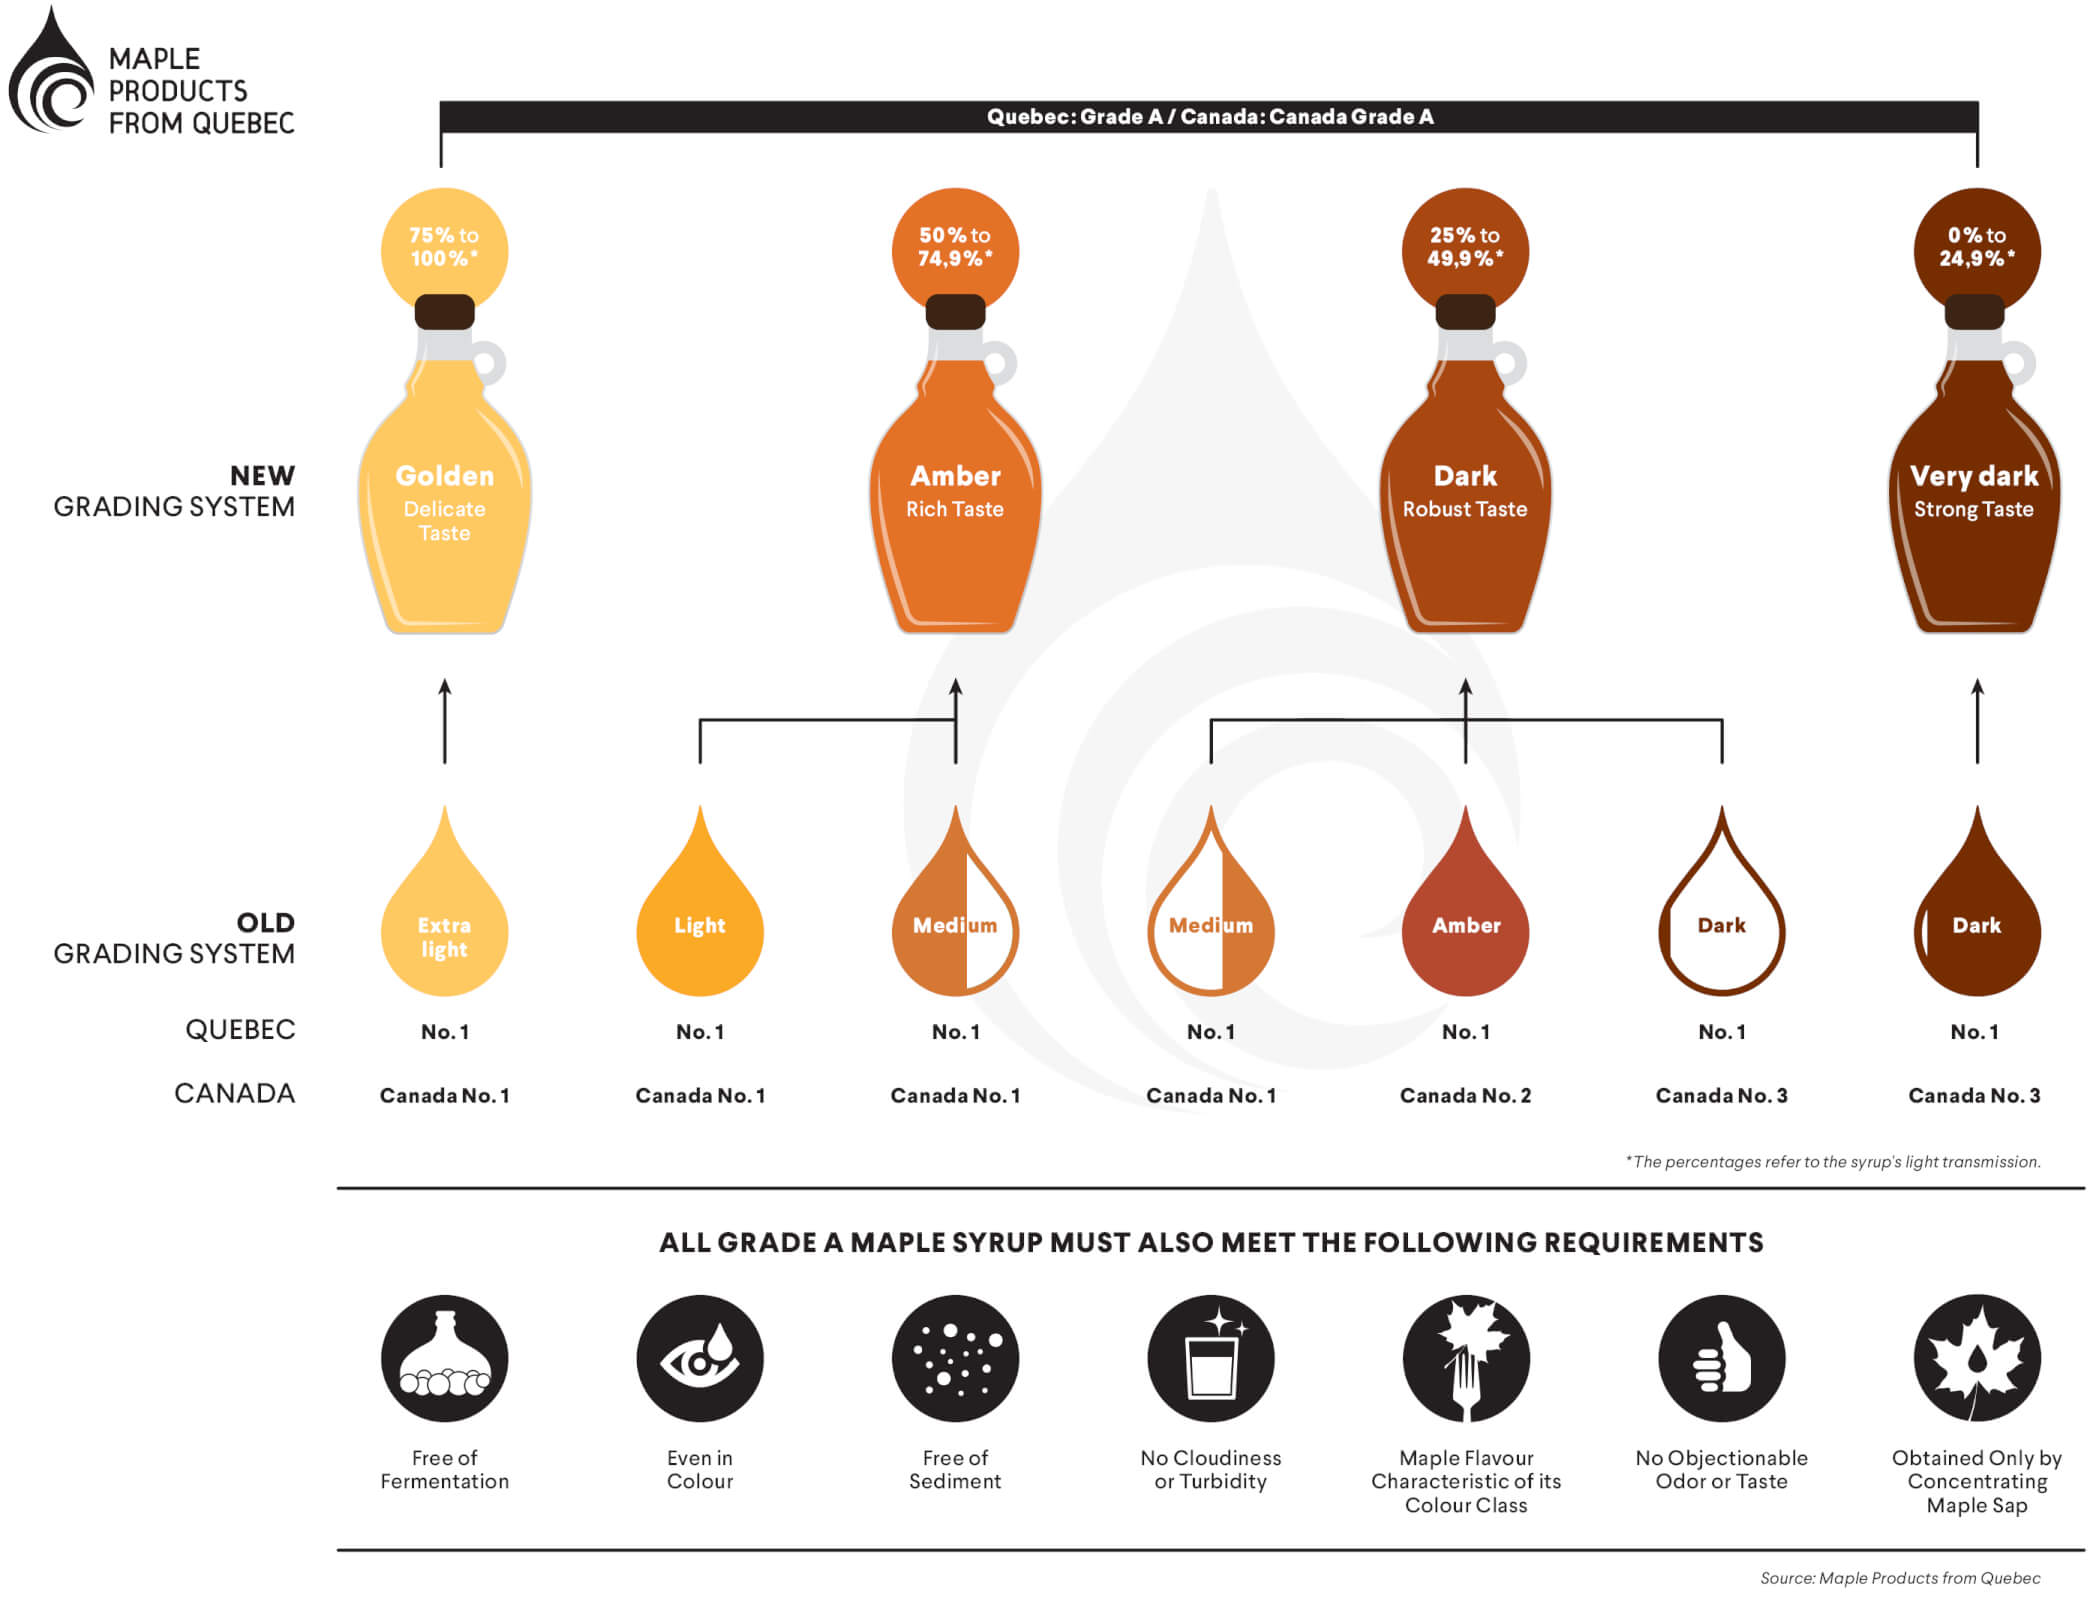 Classification of maple syrup